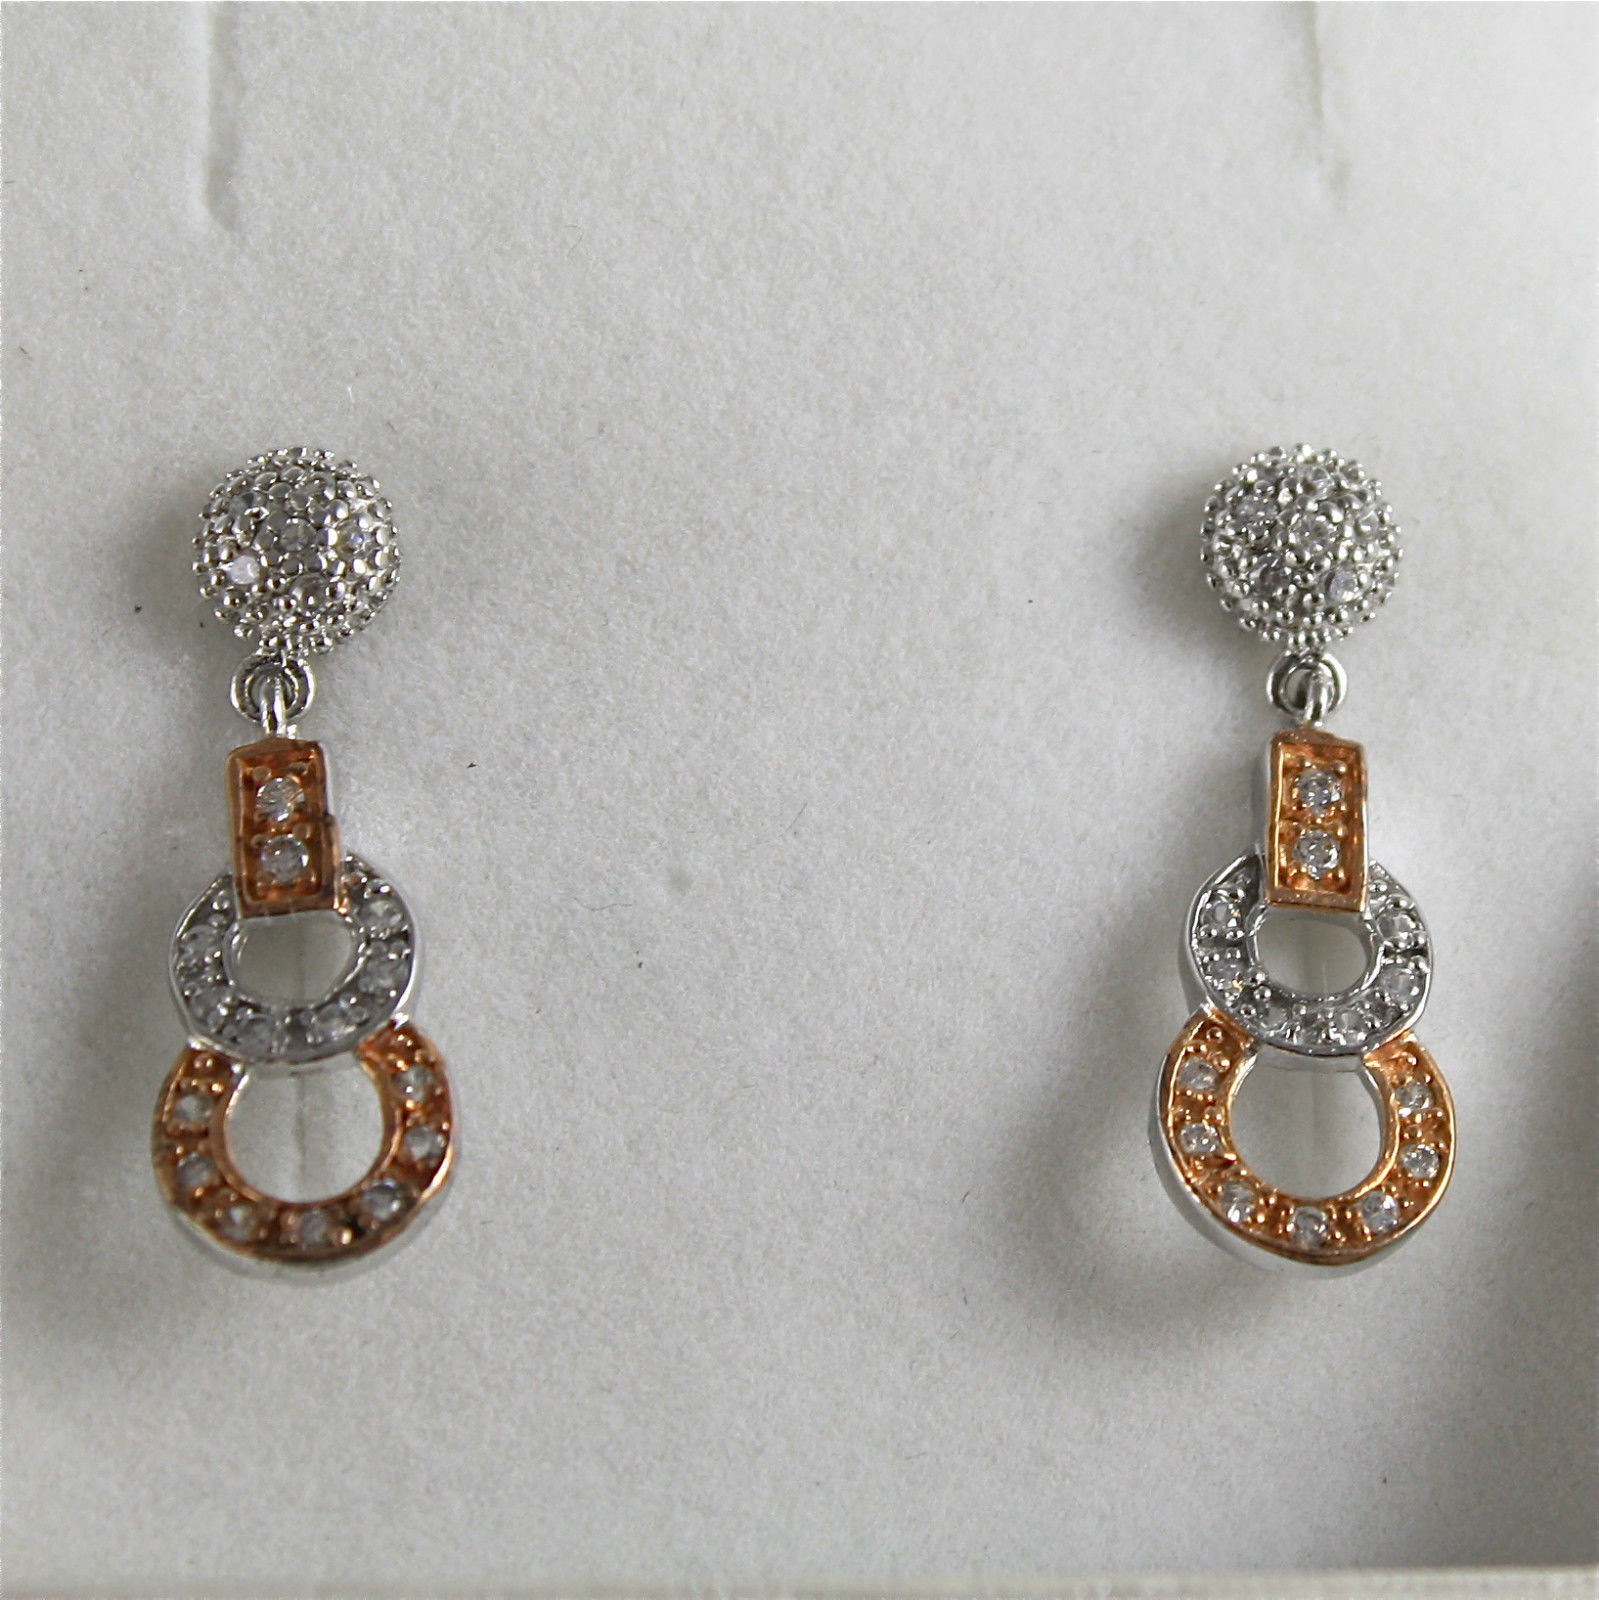 .925 RHODIUM SILVER EARRINGS, ROSE GOLD PLATED, ZIRCONIA, VINTAGE STYLE